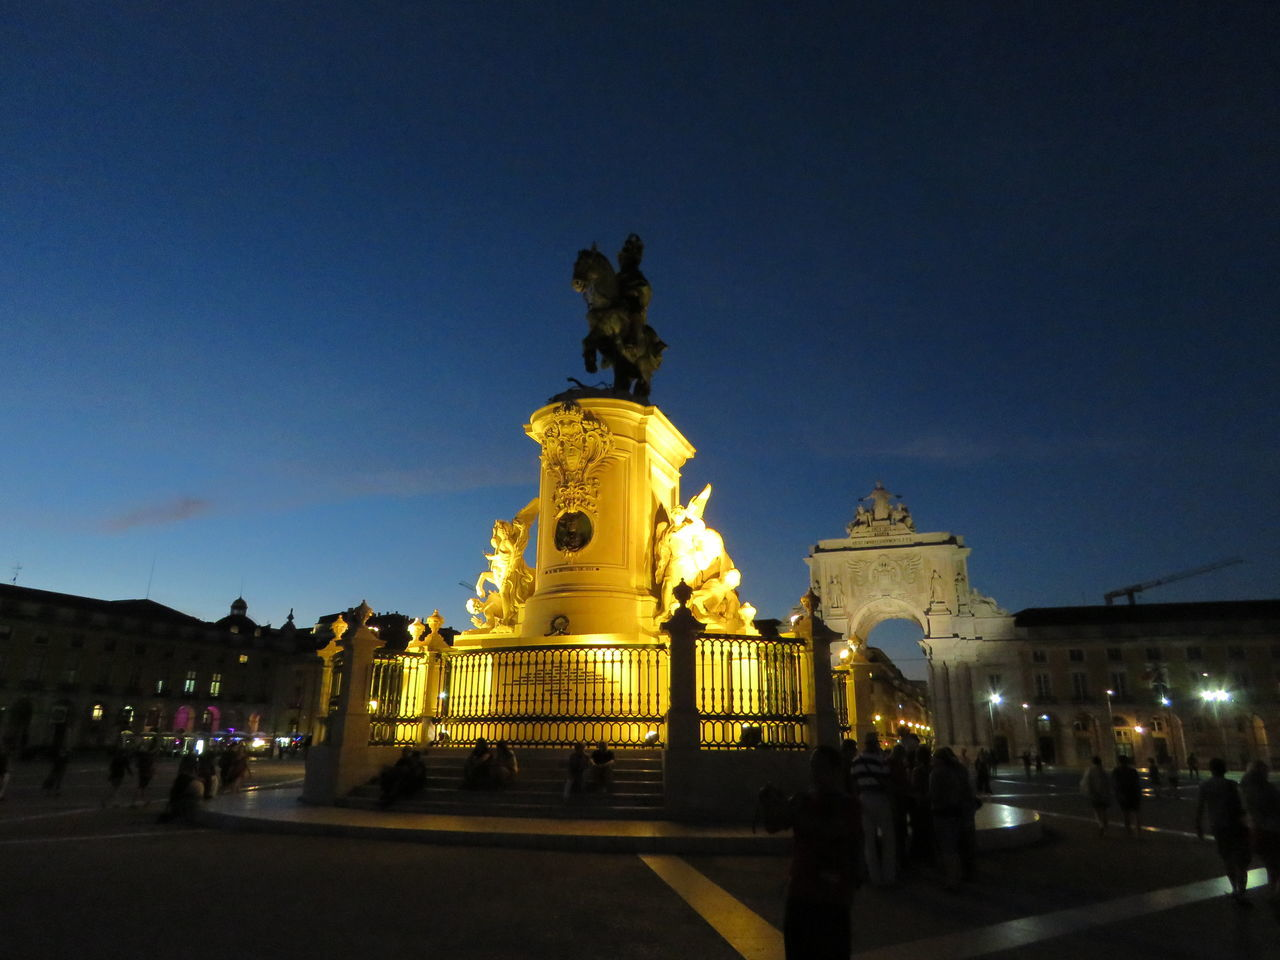 statue, sculpture, human representation, art and craft, male likeness, architecture, built structure, history, building exterior, monument, night, gold colored, outdoors, travel destinations, illuminated, city, arts culture and entertainment, sky, low angle view, clear sky, baroque style, king - royal person, no people